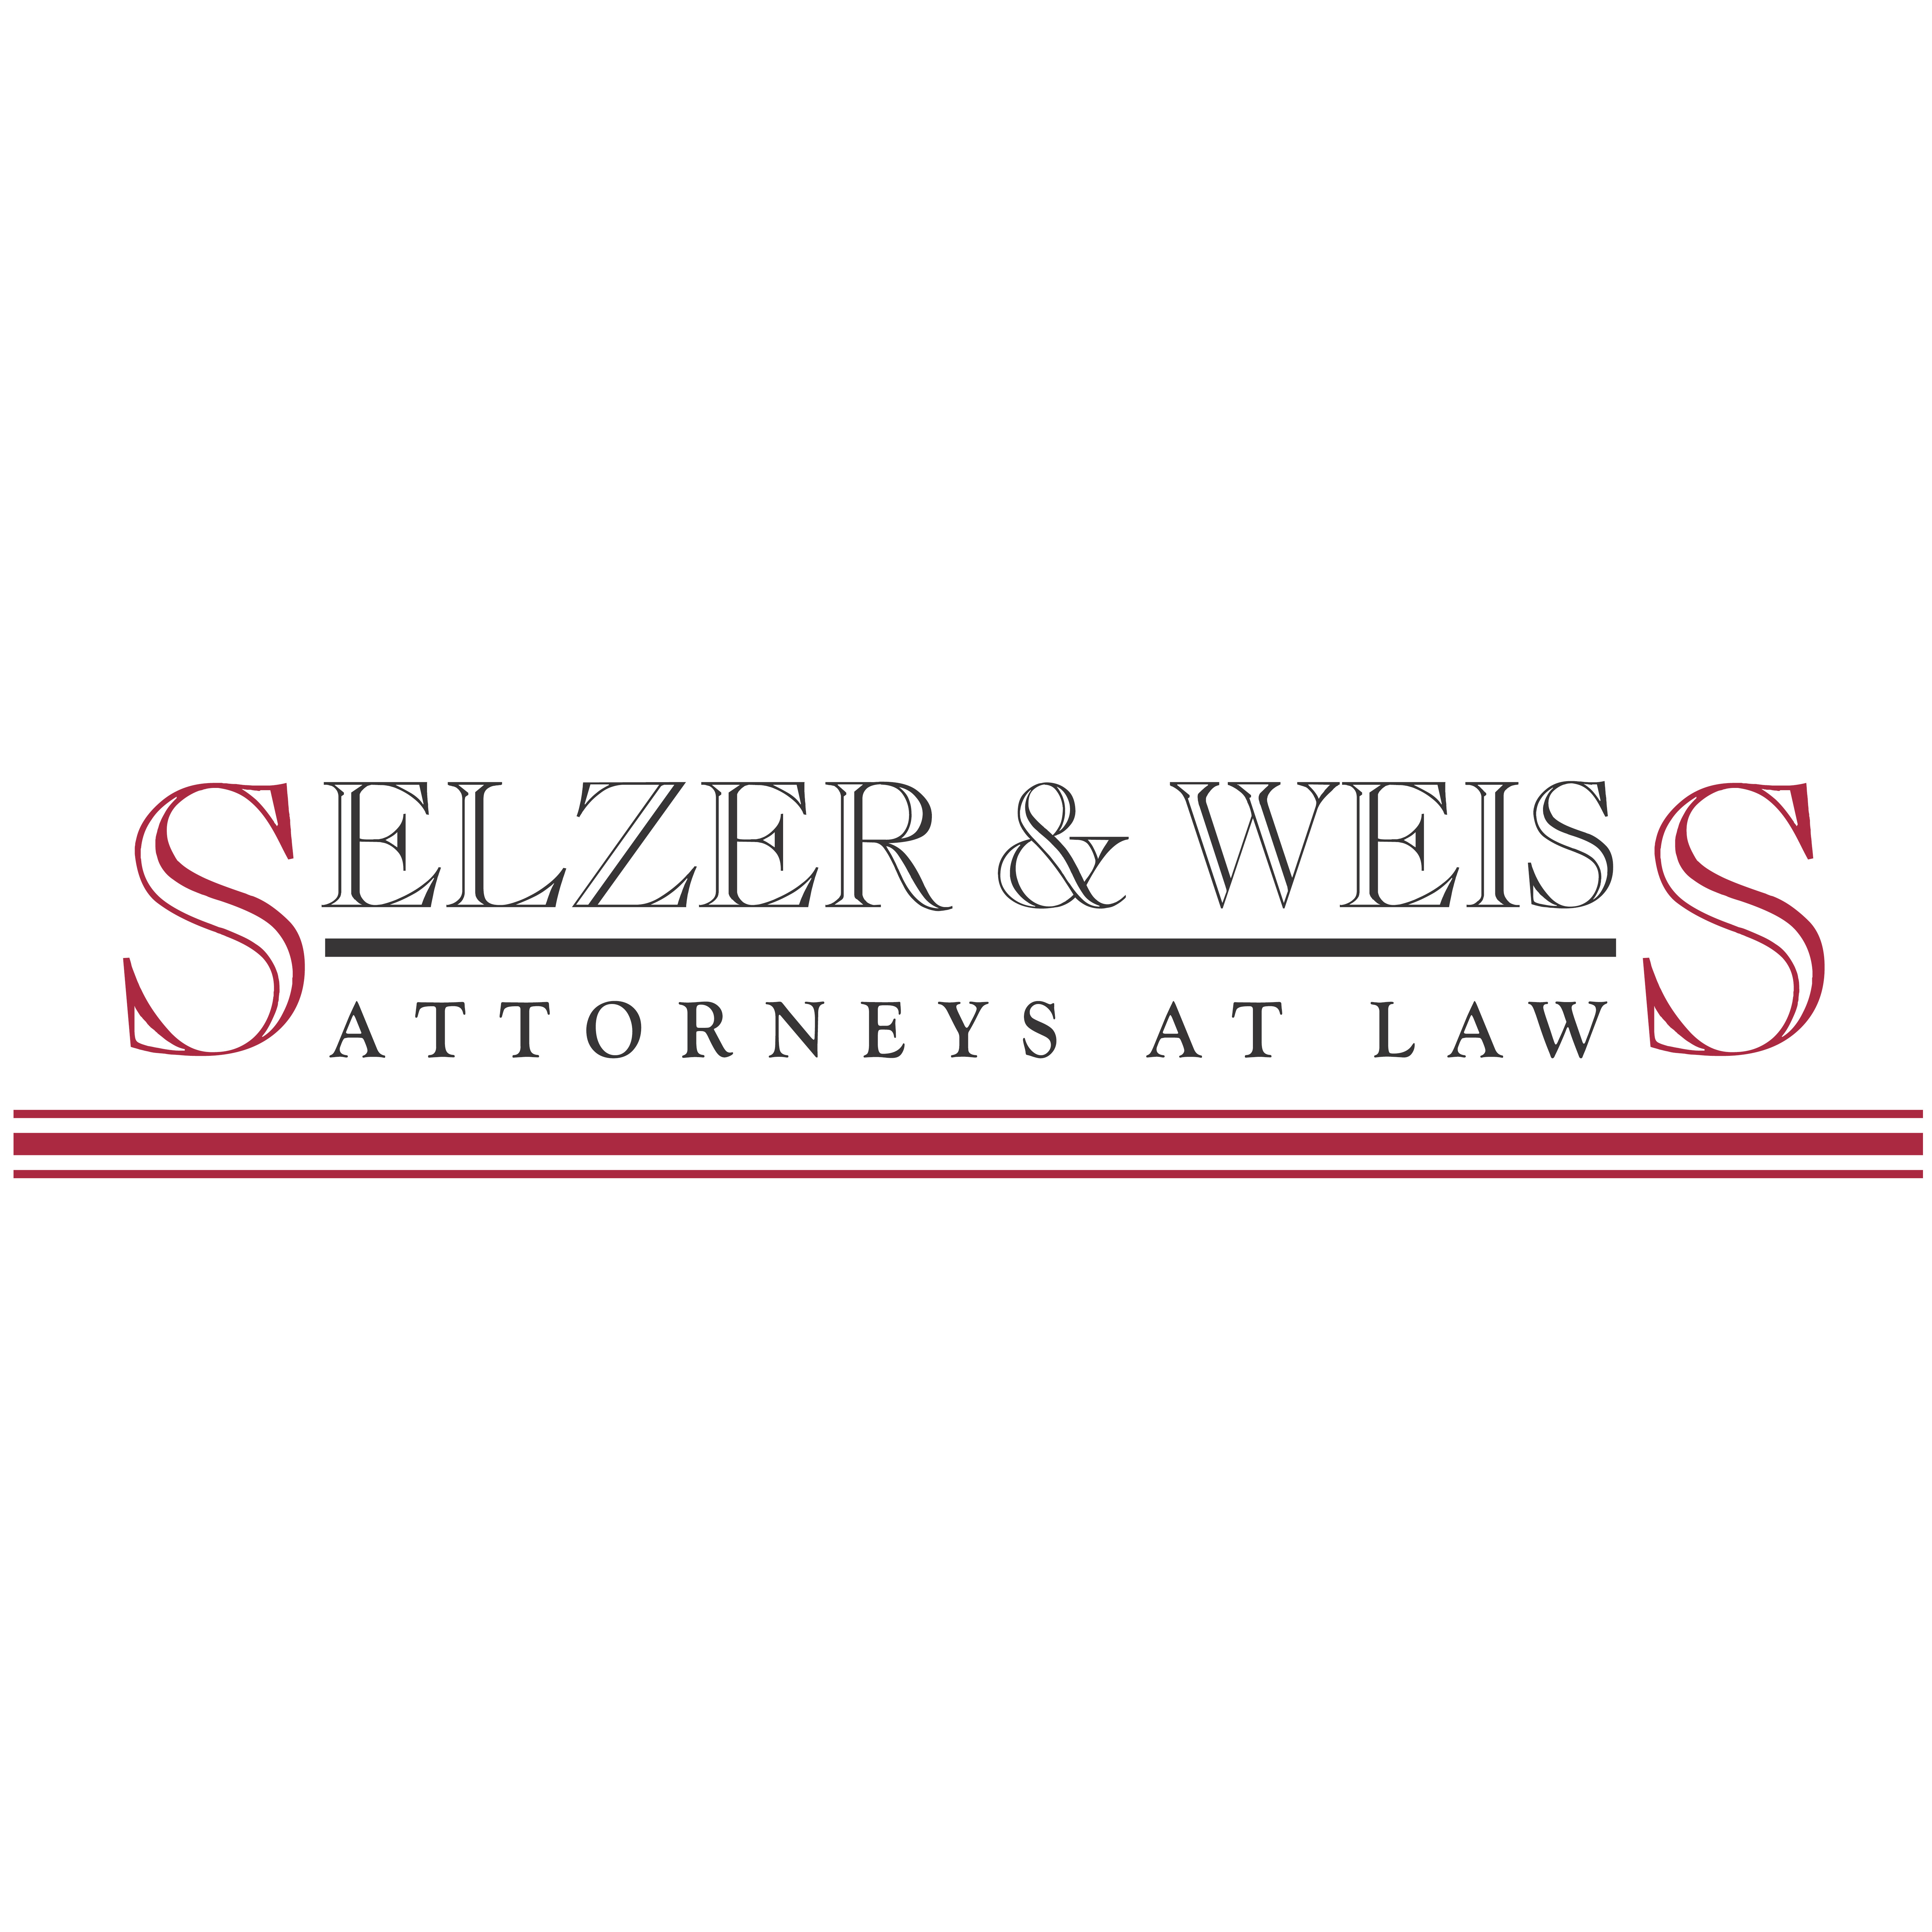 Personal Injury Law - Selzer & Weiss